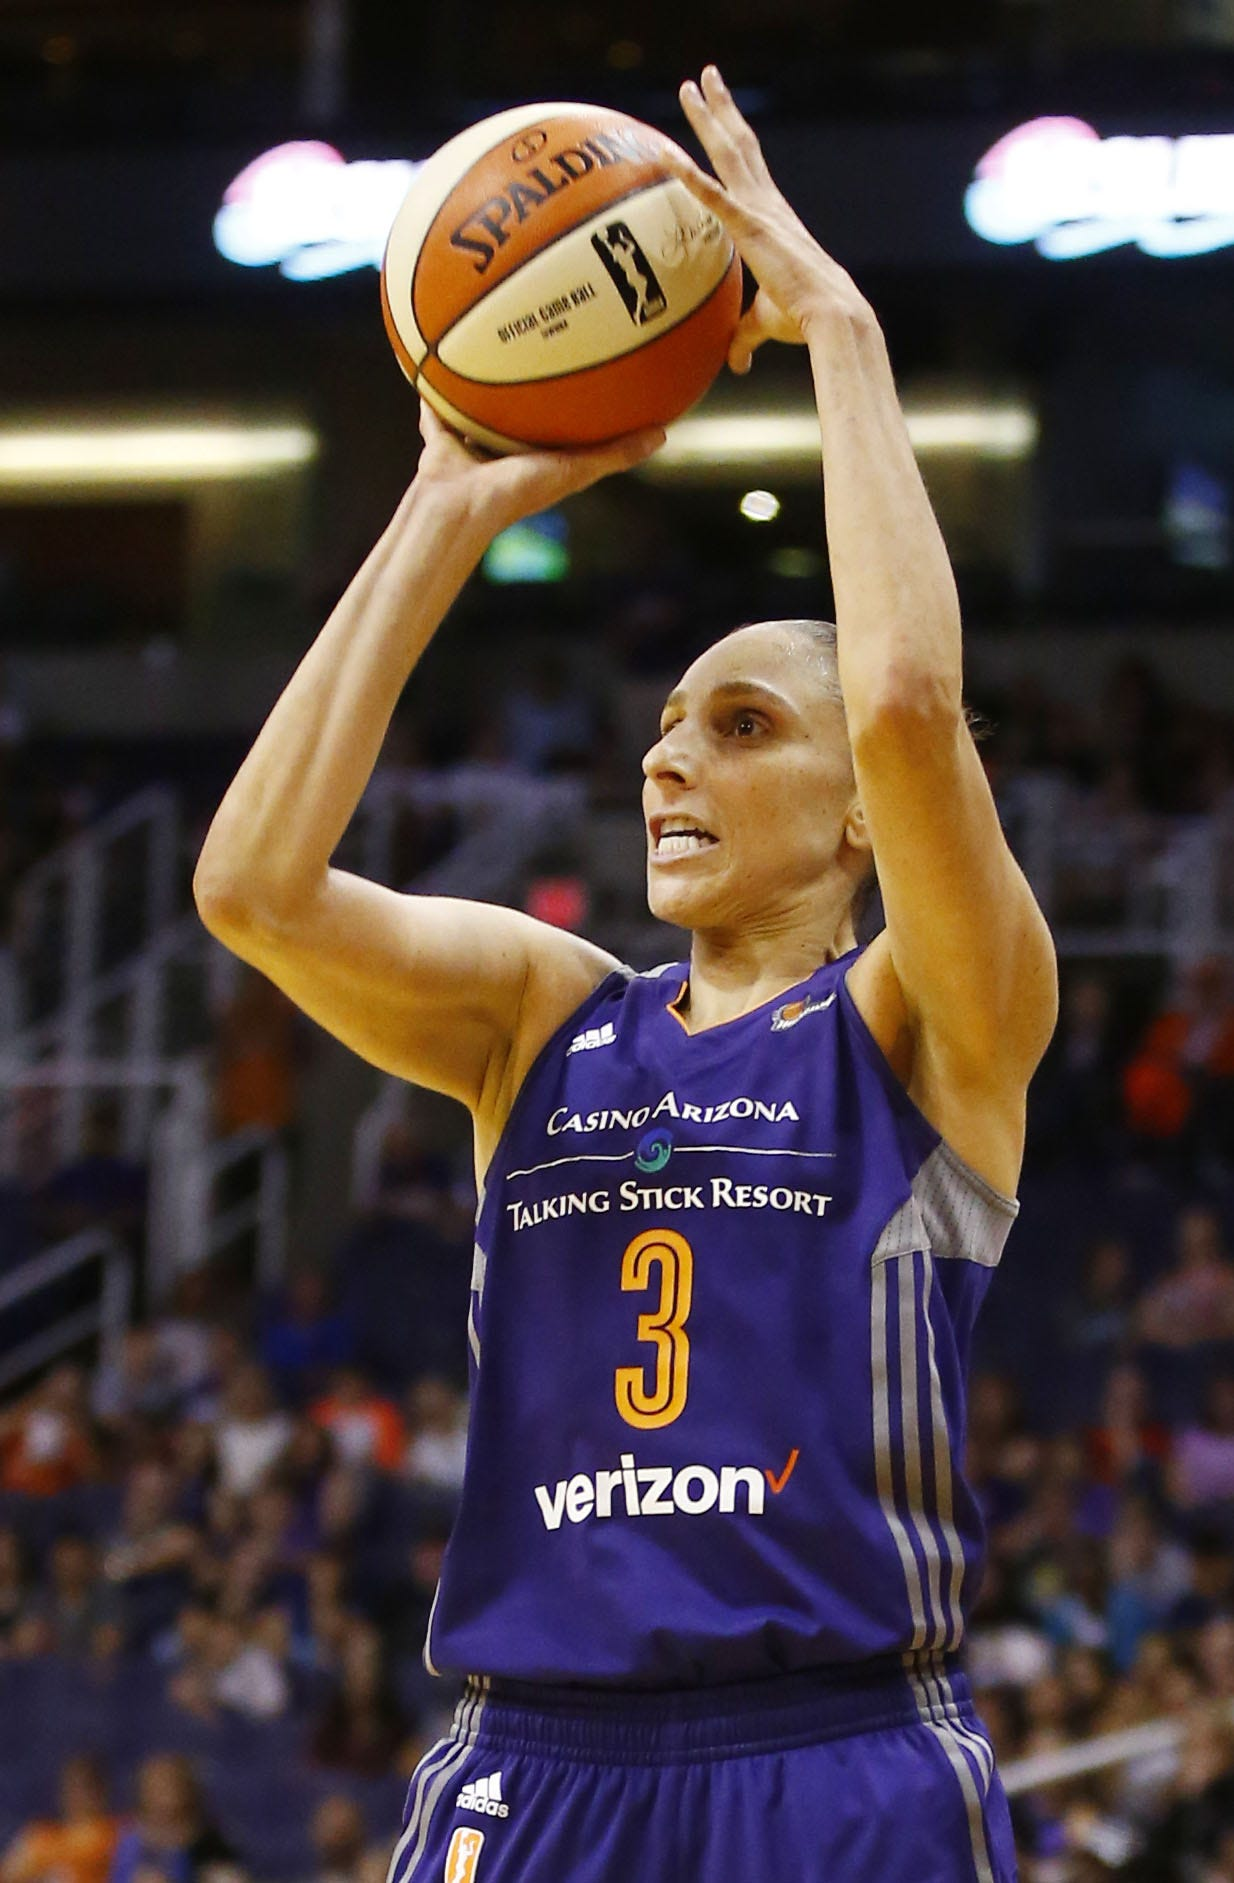 Diana Taurasi hits 8 3-pointers, breaks WNBA career record in win